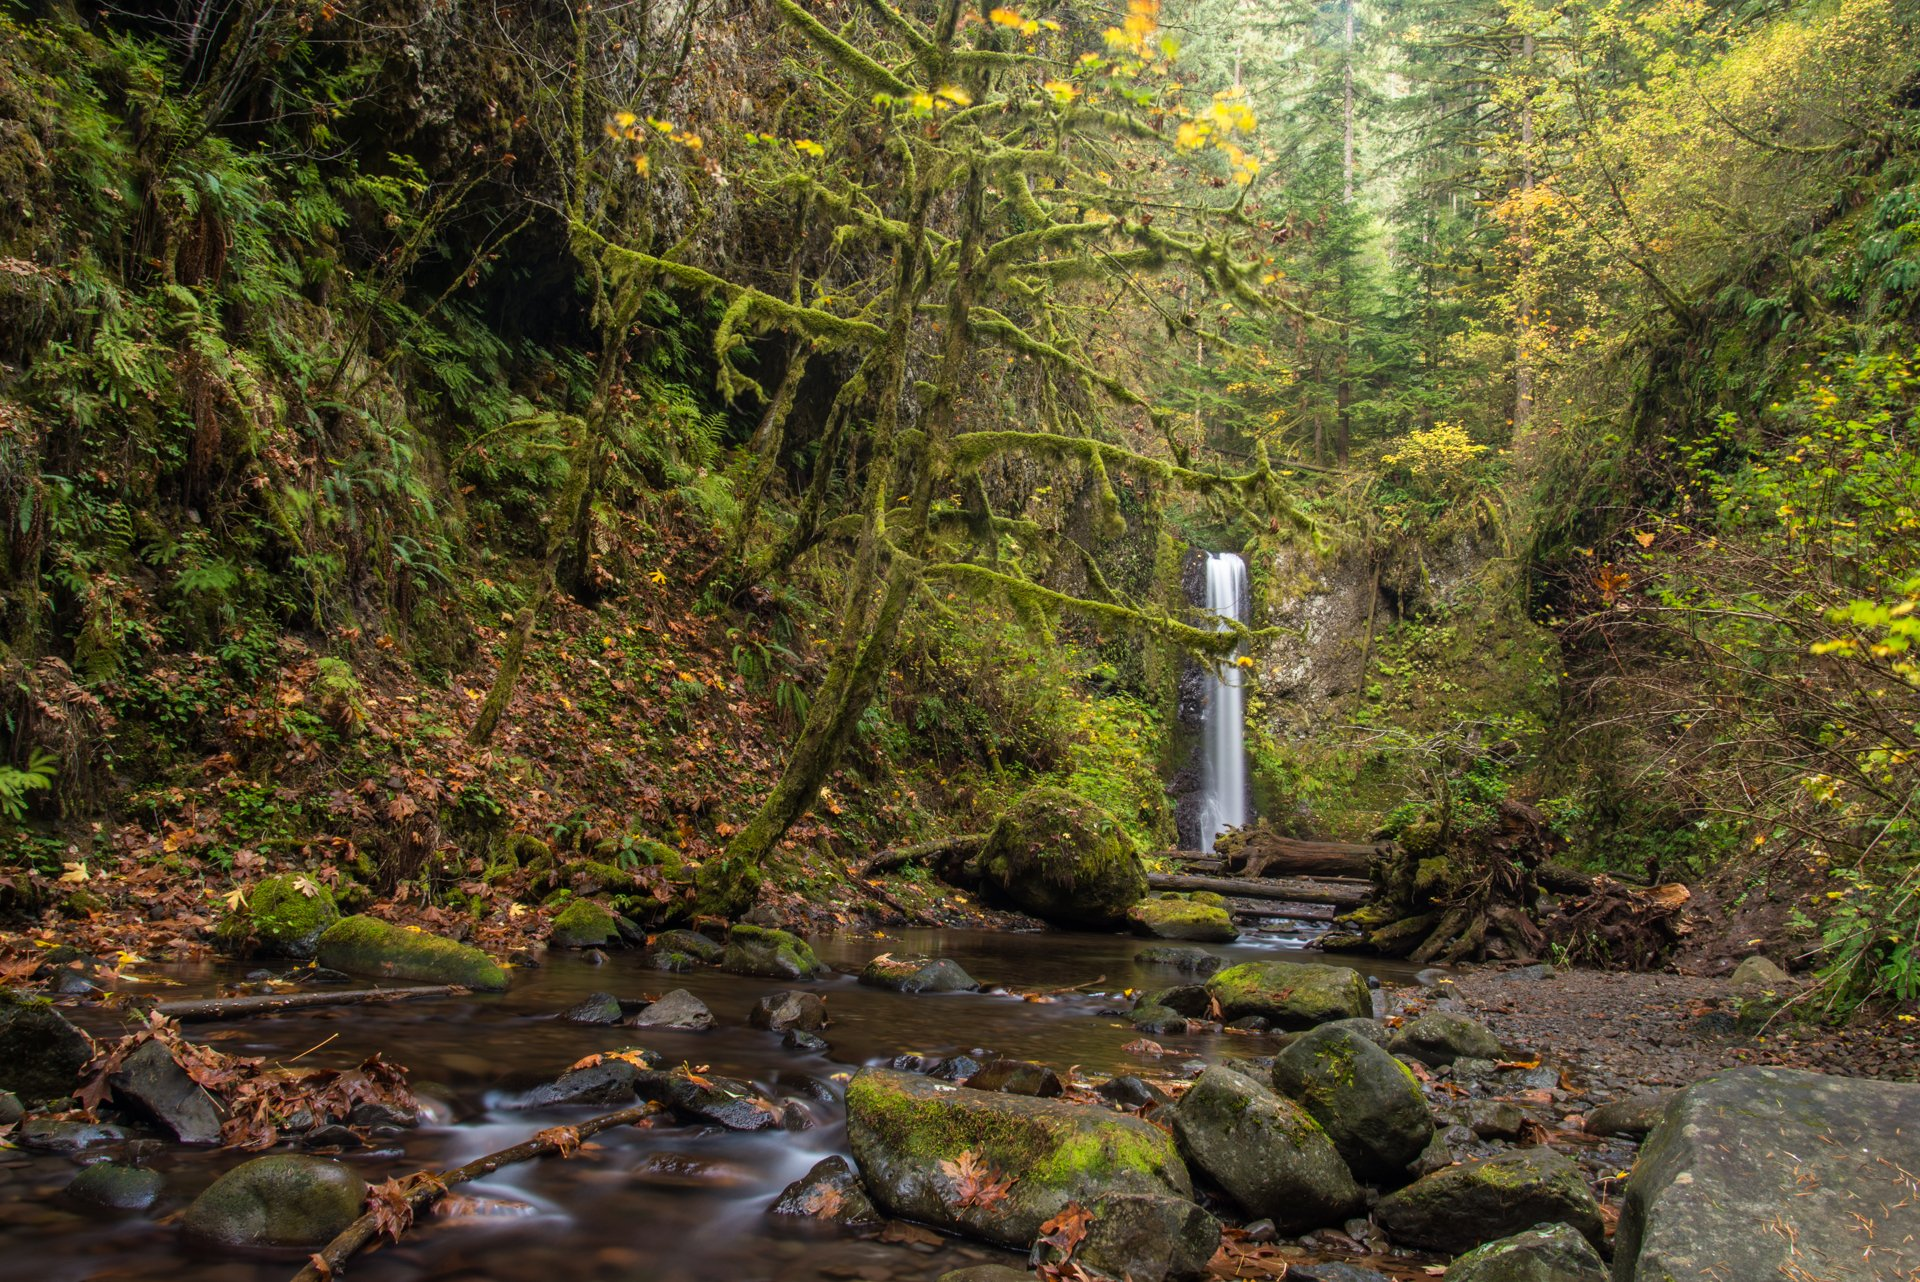 Nature Wallpaper Waterfall Columbia River Oregon: Gorge Wallpapers, Photos And Desktop Backgrounds Up To 8K